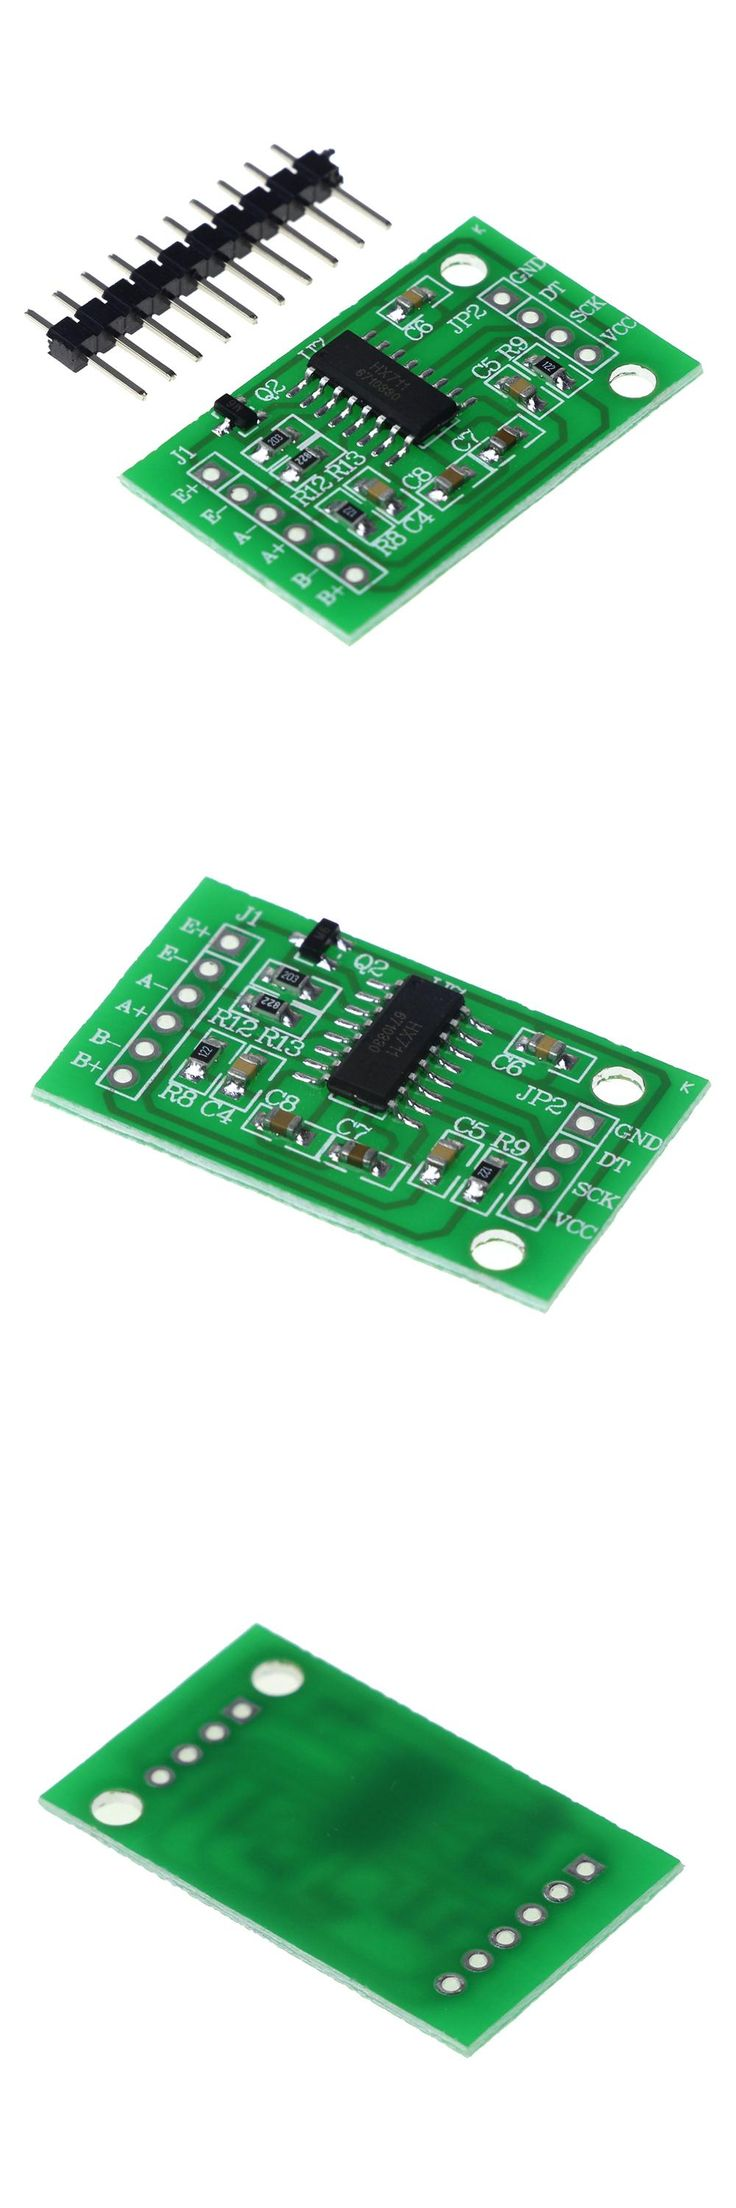 [Visit to Buy] Dual Channel HX711 Weighing Pressure Sensor 24-bit Precision A/D Module For Arduino DIY Electronic Scale #Advertisement